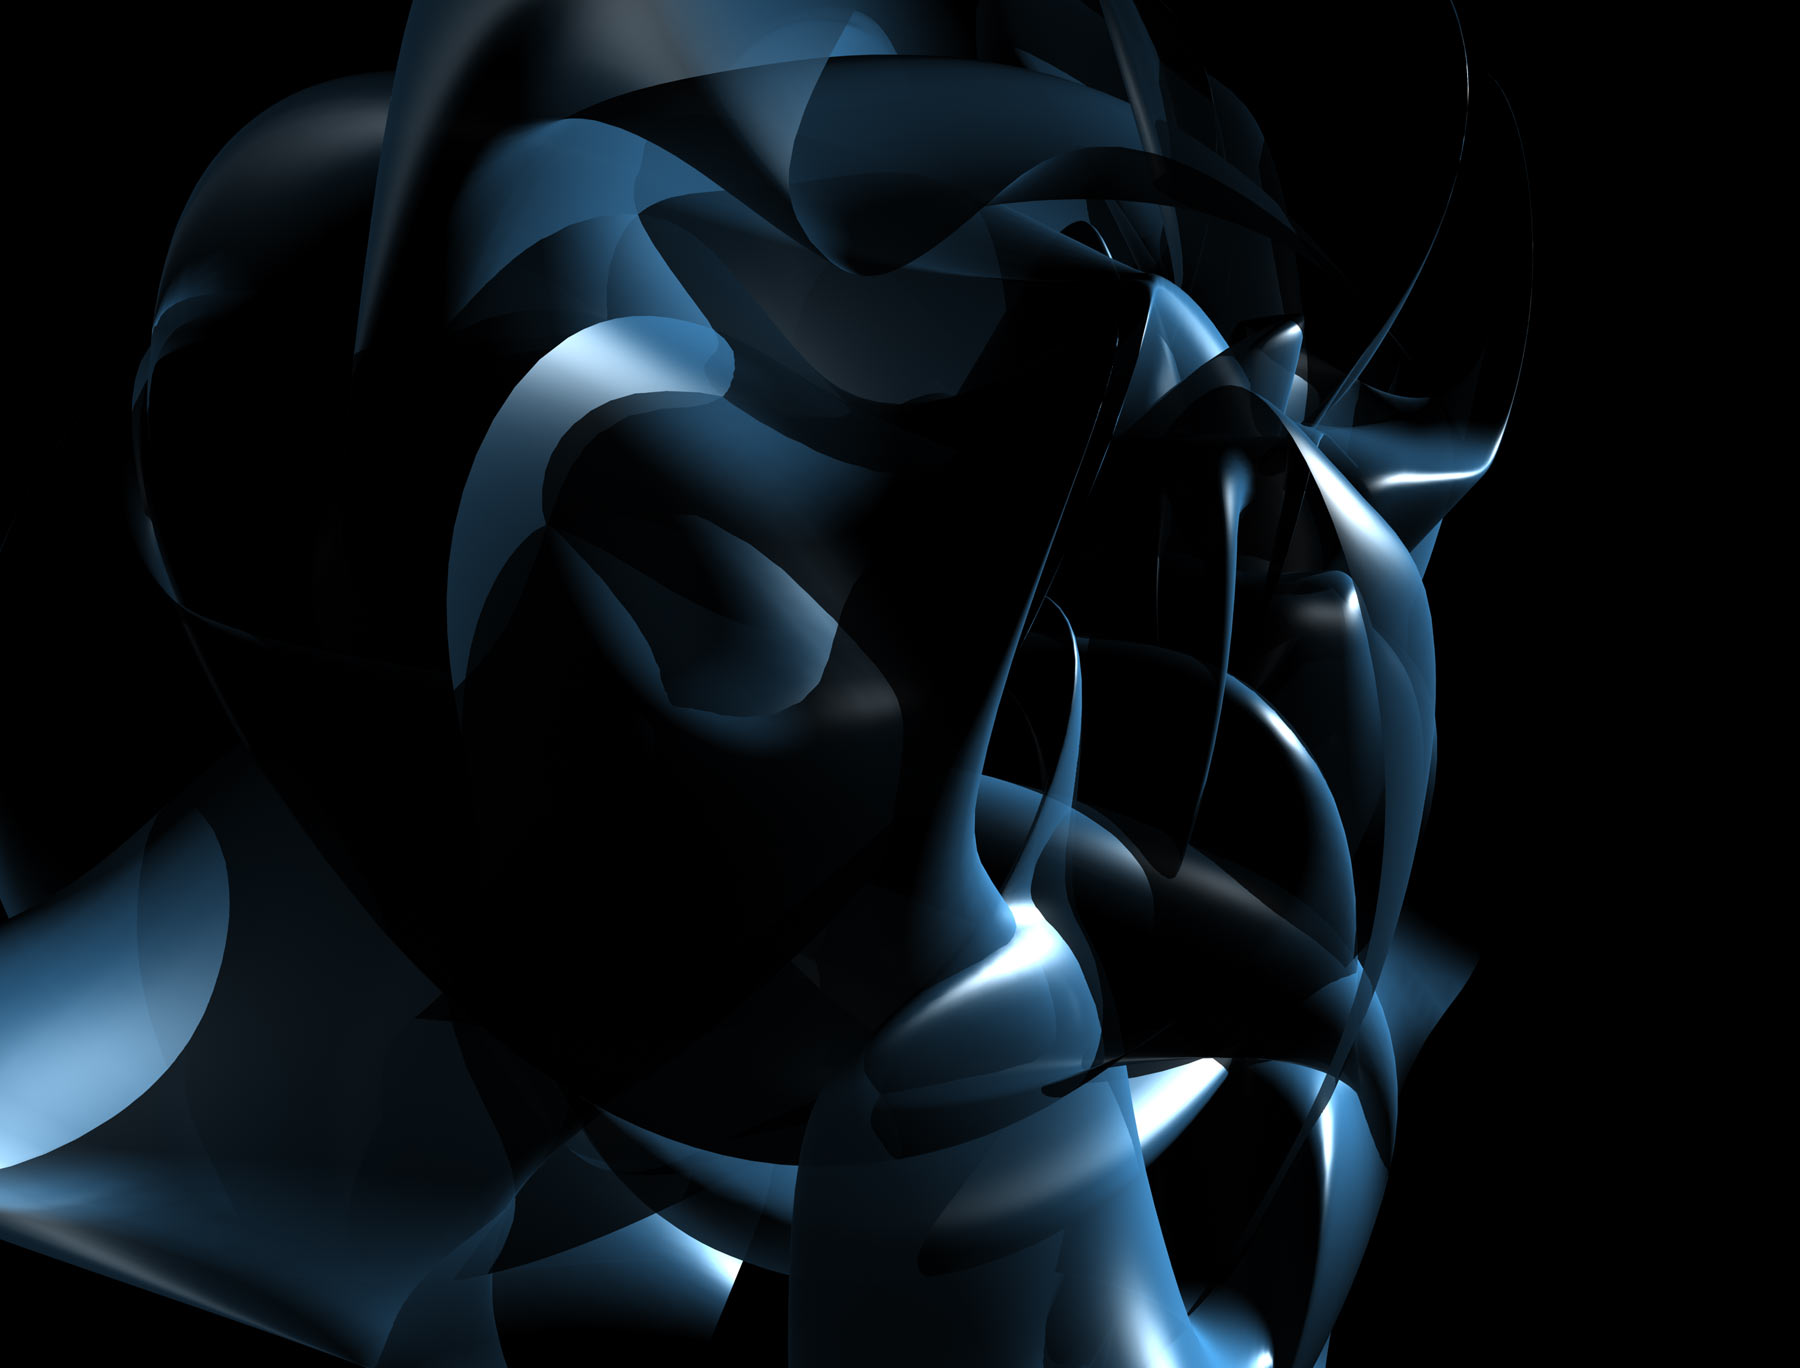 Abstract Shape, 3d, Abstract, Black, Blue, HQ Photo